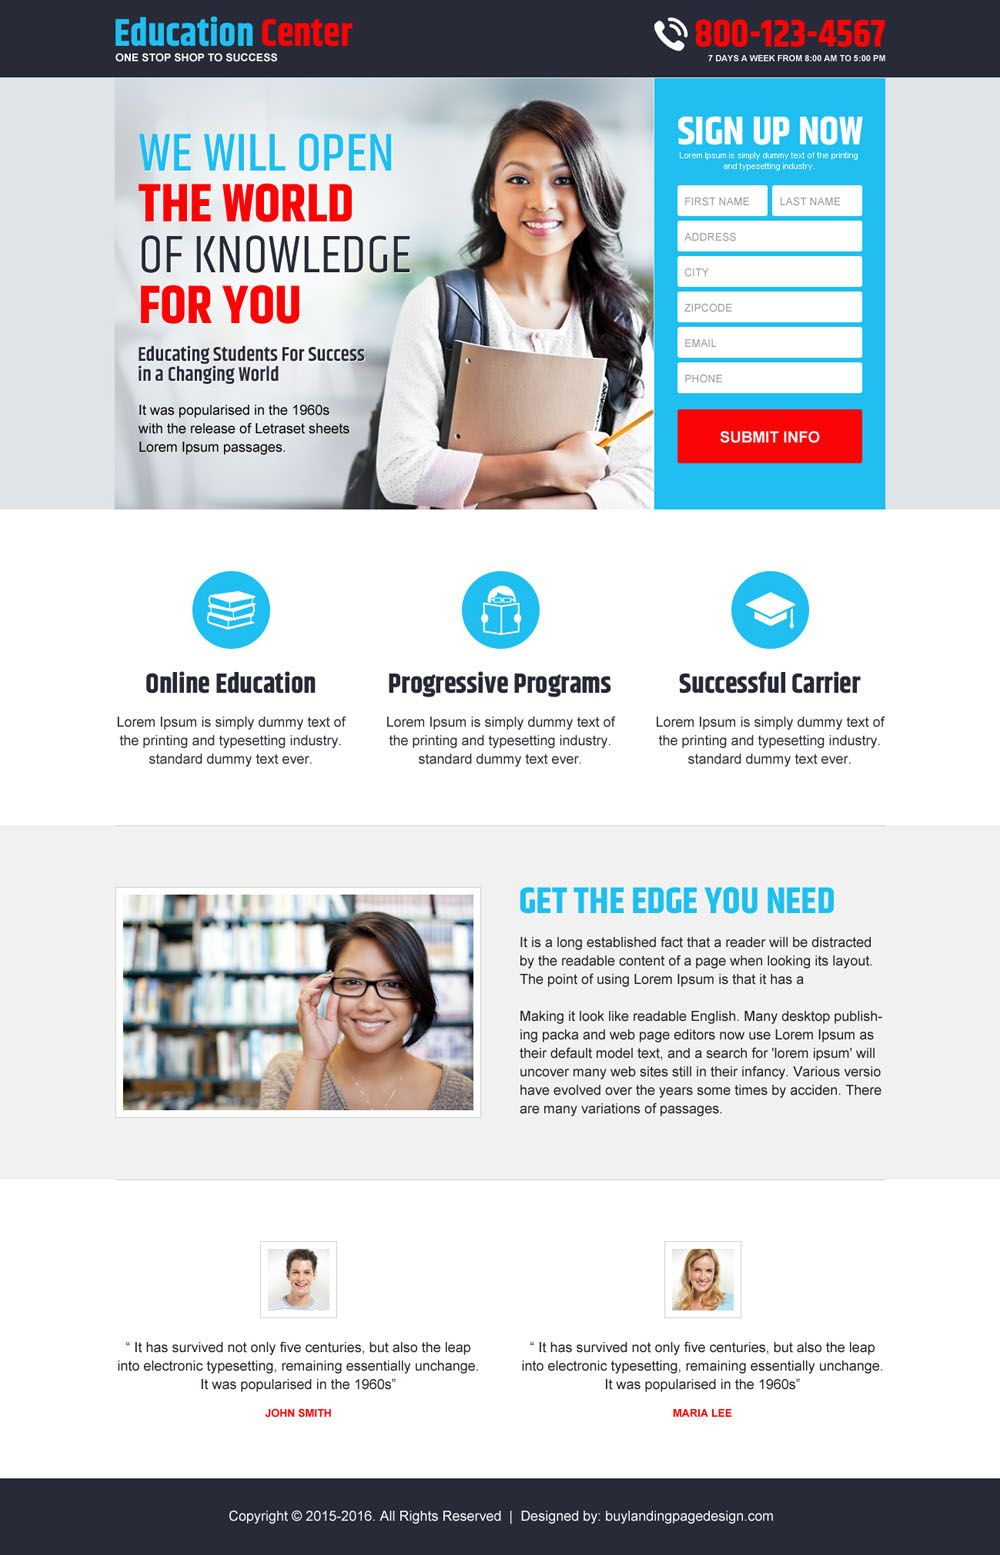 online education service best converting landing page design ...